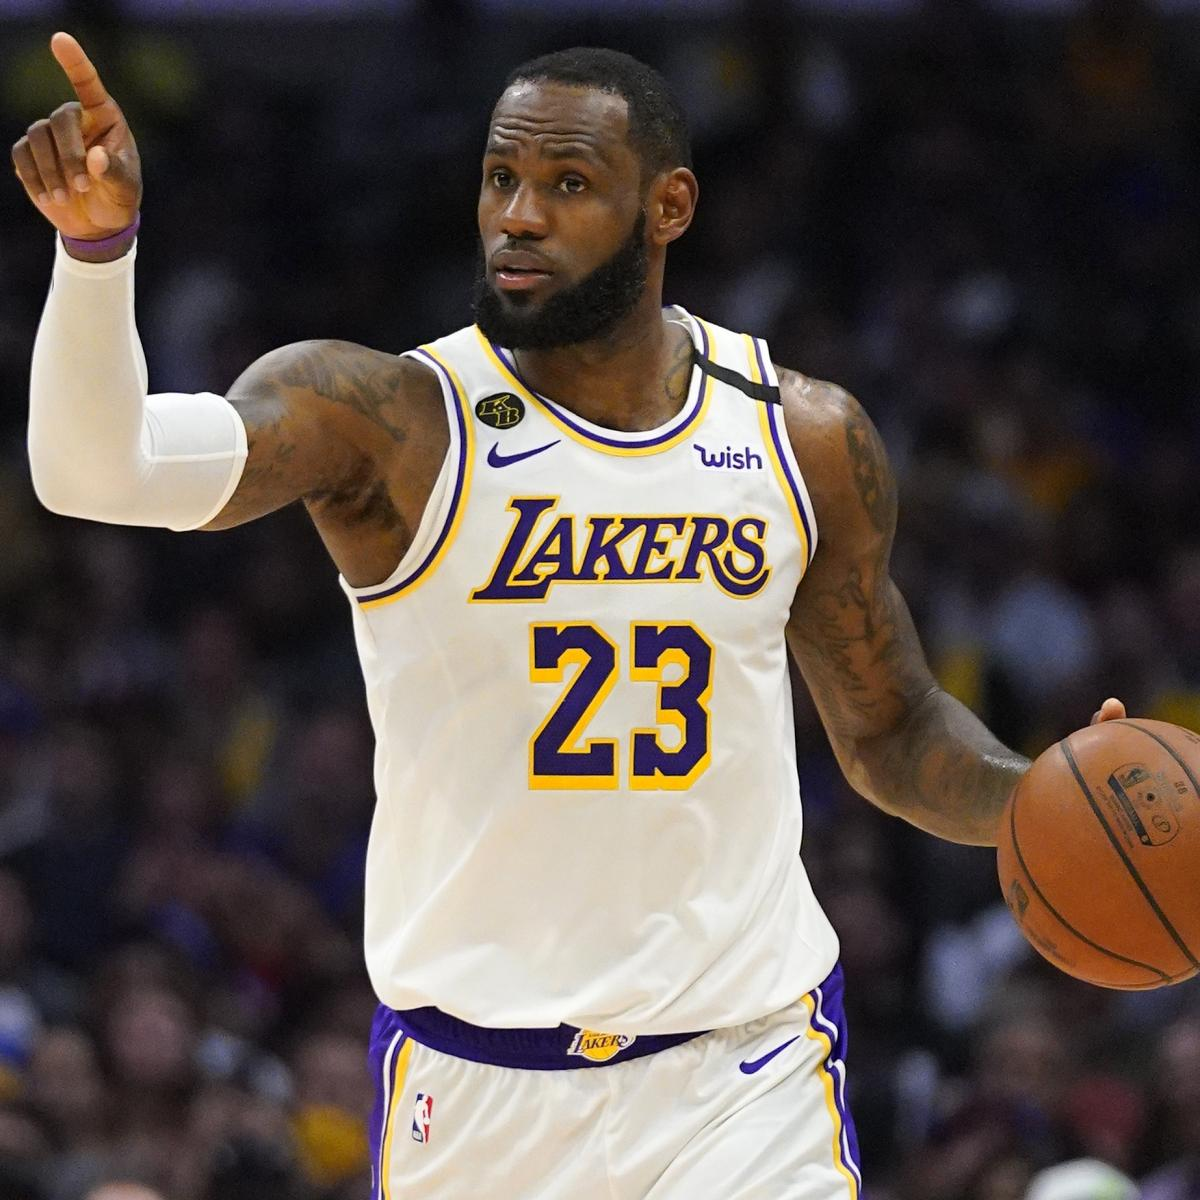 Lakers Lebron James Will Wear Last Name On Jersey Not Social Justice Message Bleacher Report Latest News Videos And Highlights